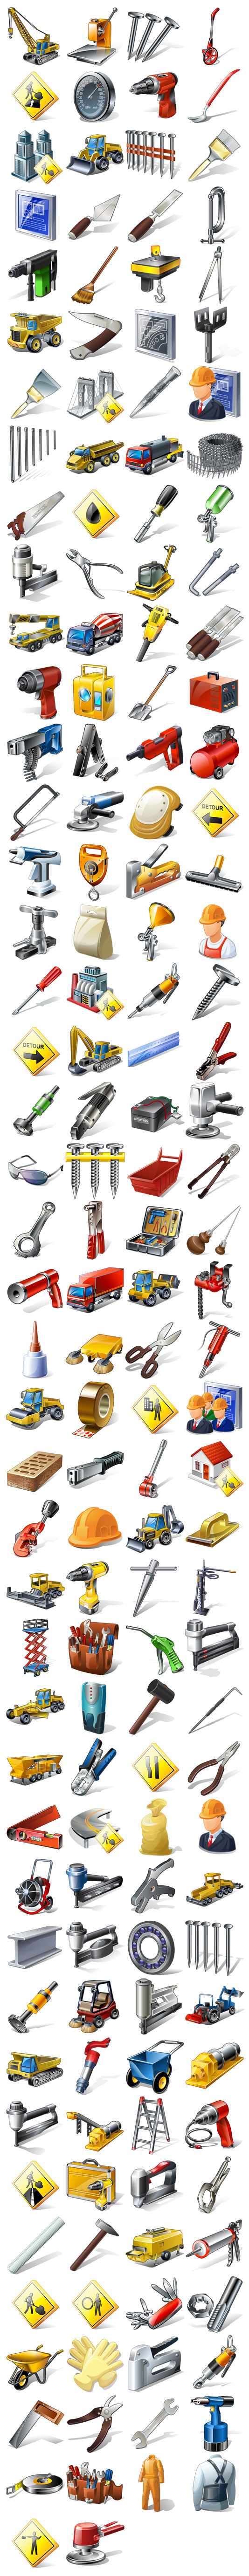 Link toEngineering equipment, tools, people and goods series icon